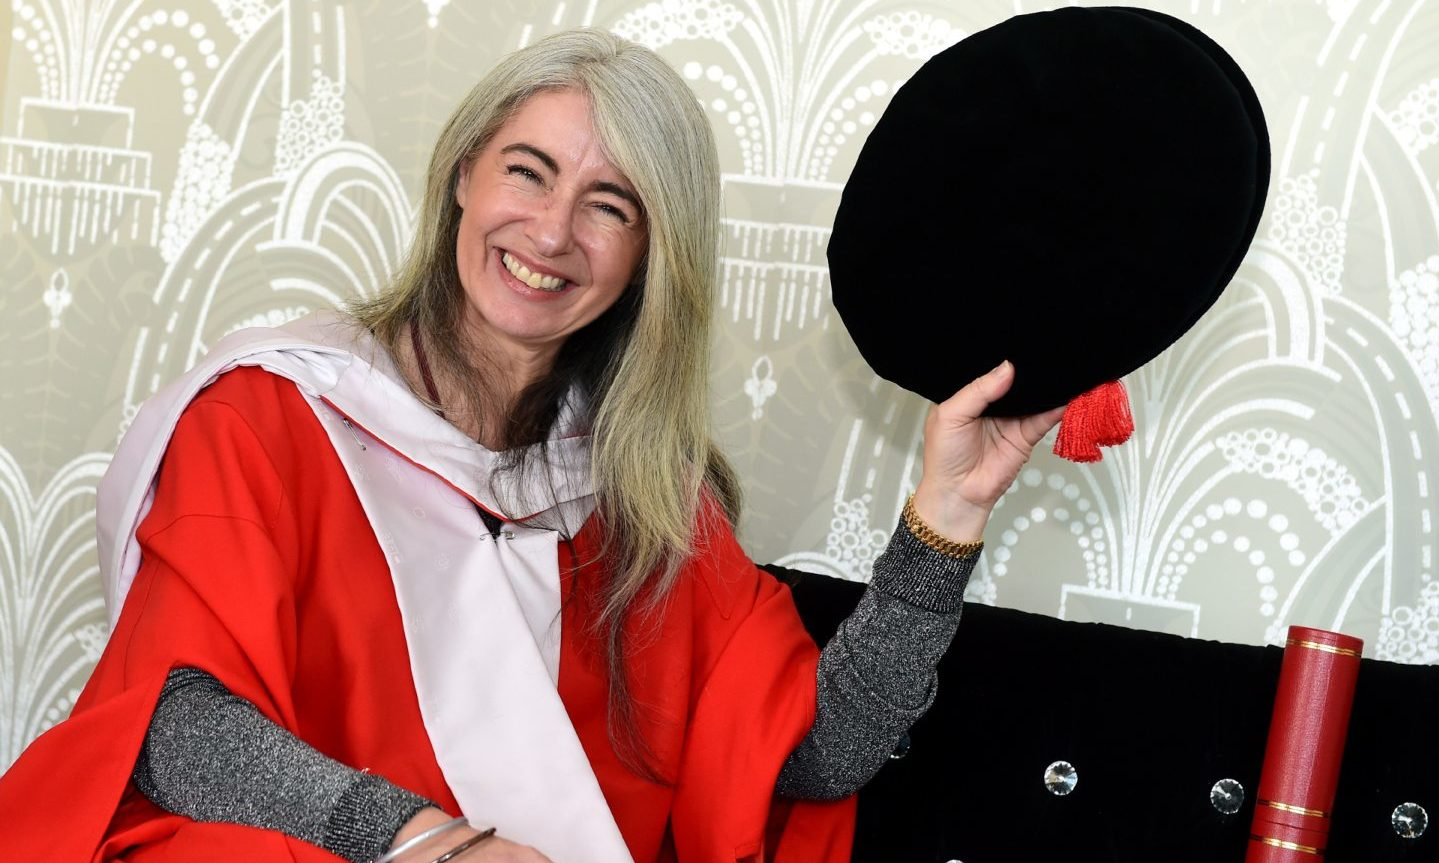 Honorary graduate Dame Evelyn Glennie was presented the award by Sir Ian Wood in 2016.